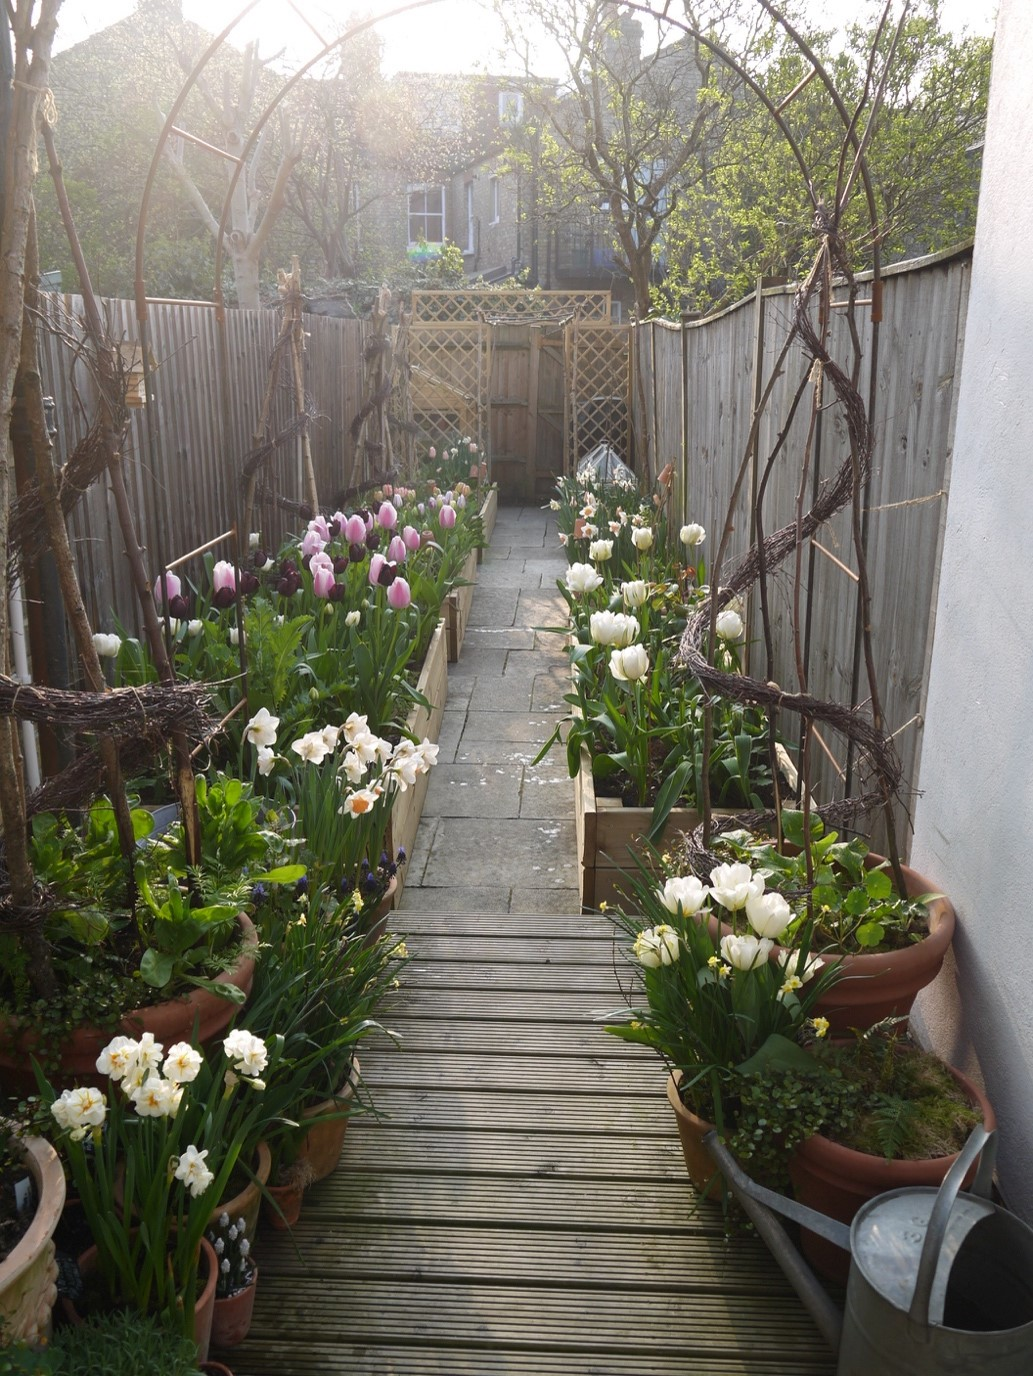 In this image, Alex has taken a picture of their garden. In the middle is a wooden path and at either side are different types of potted plants.